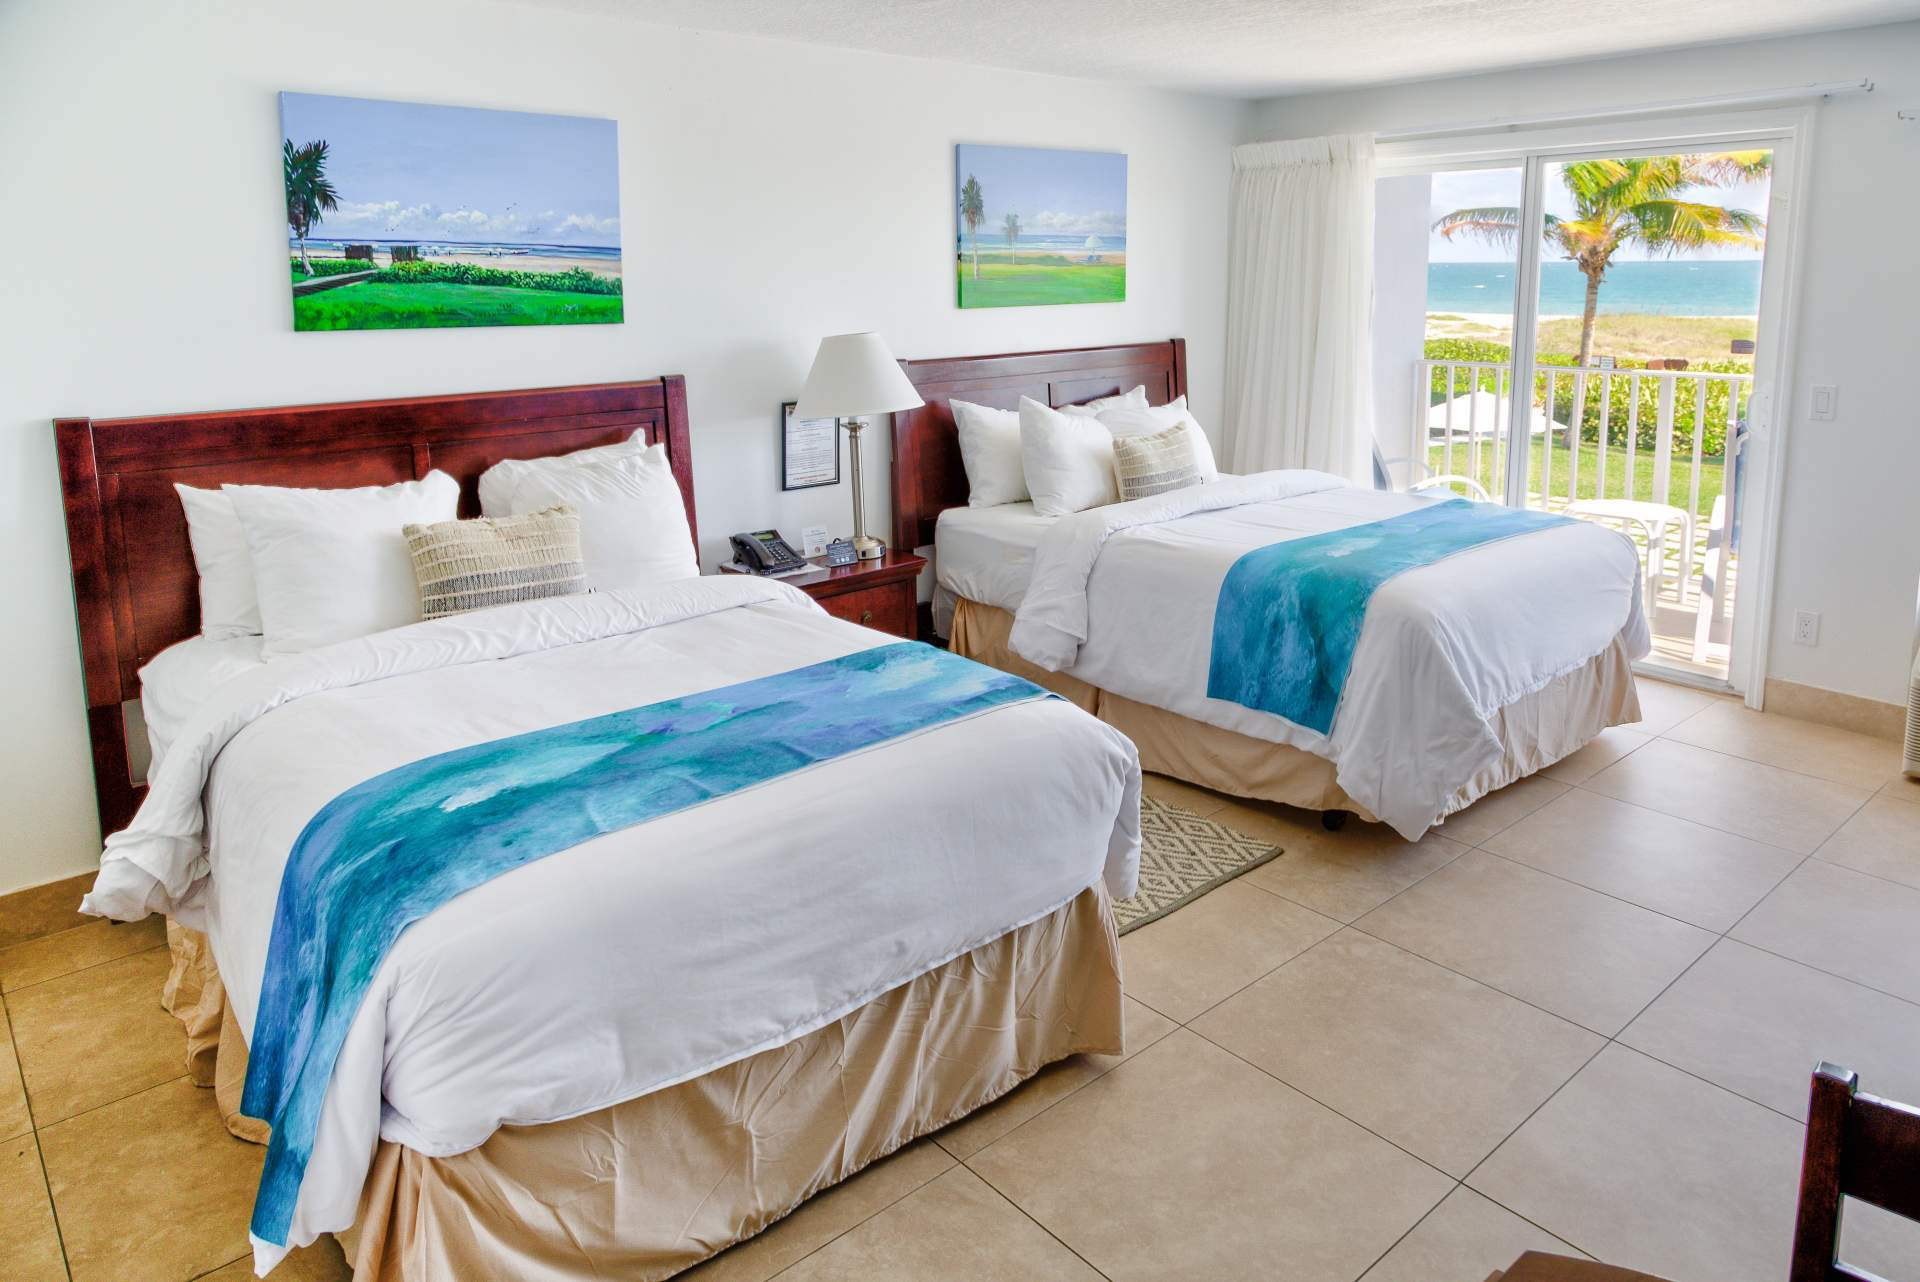 Two bed with outdoor beach view